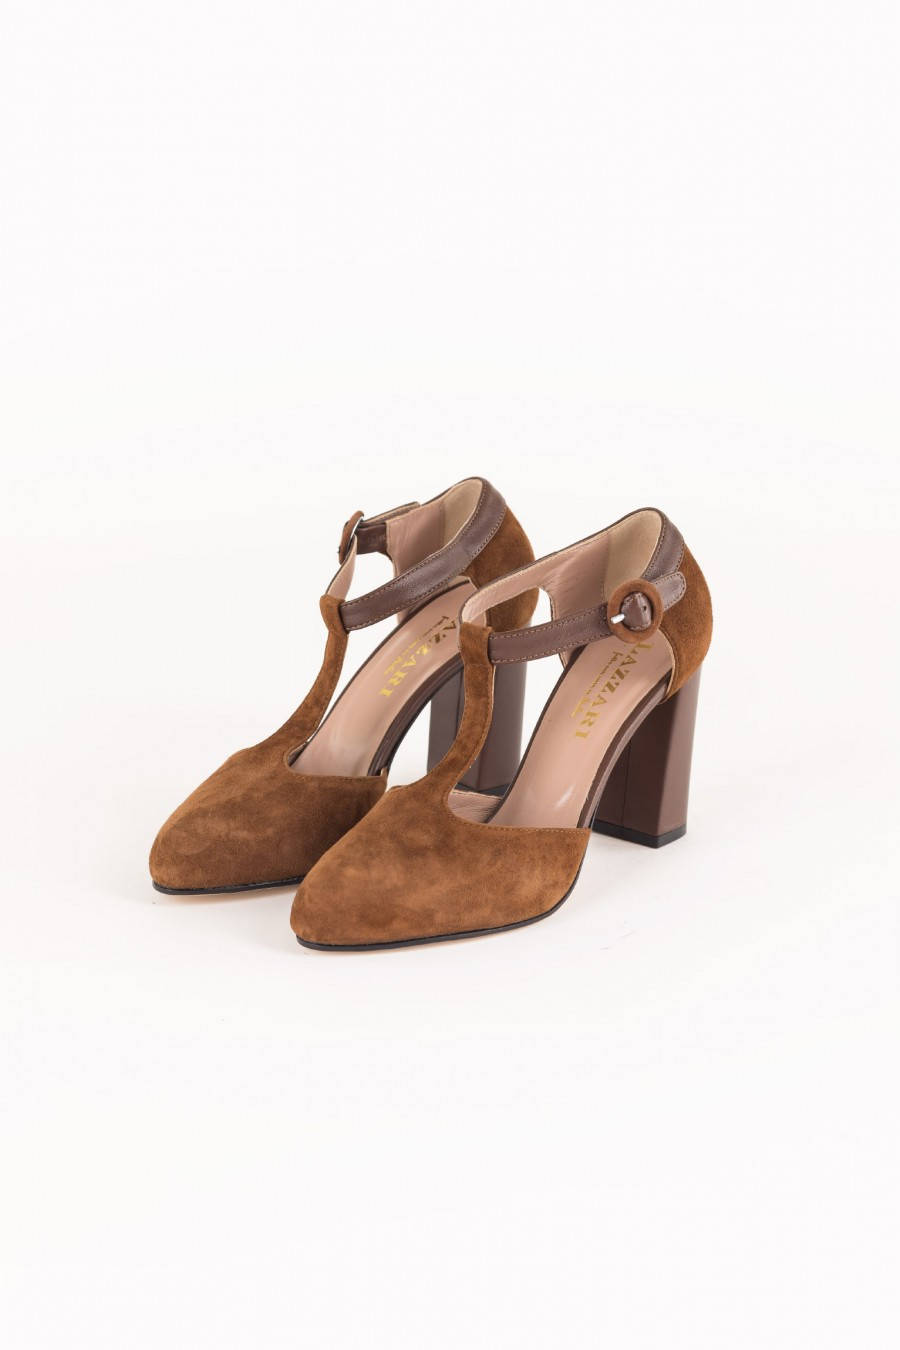 T-strap shoes with heels